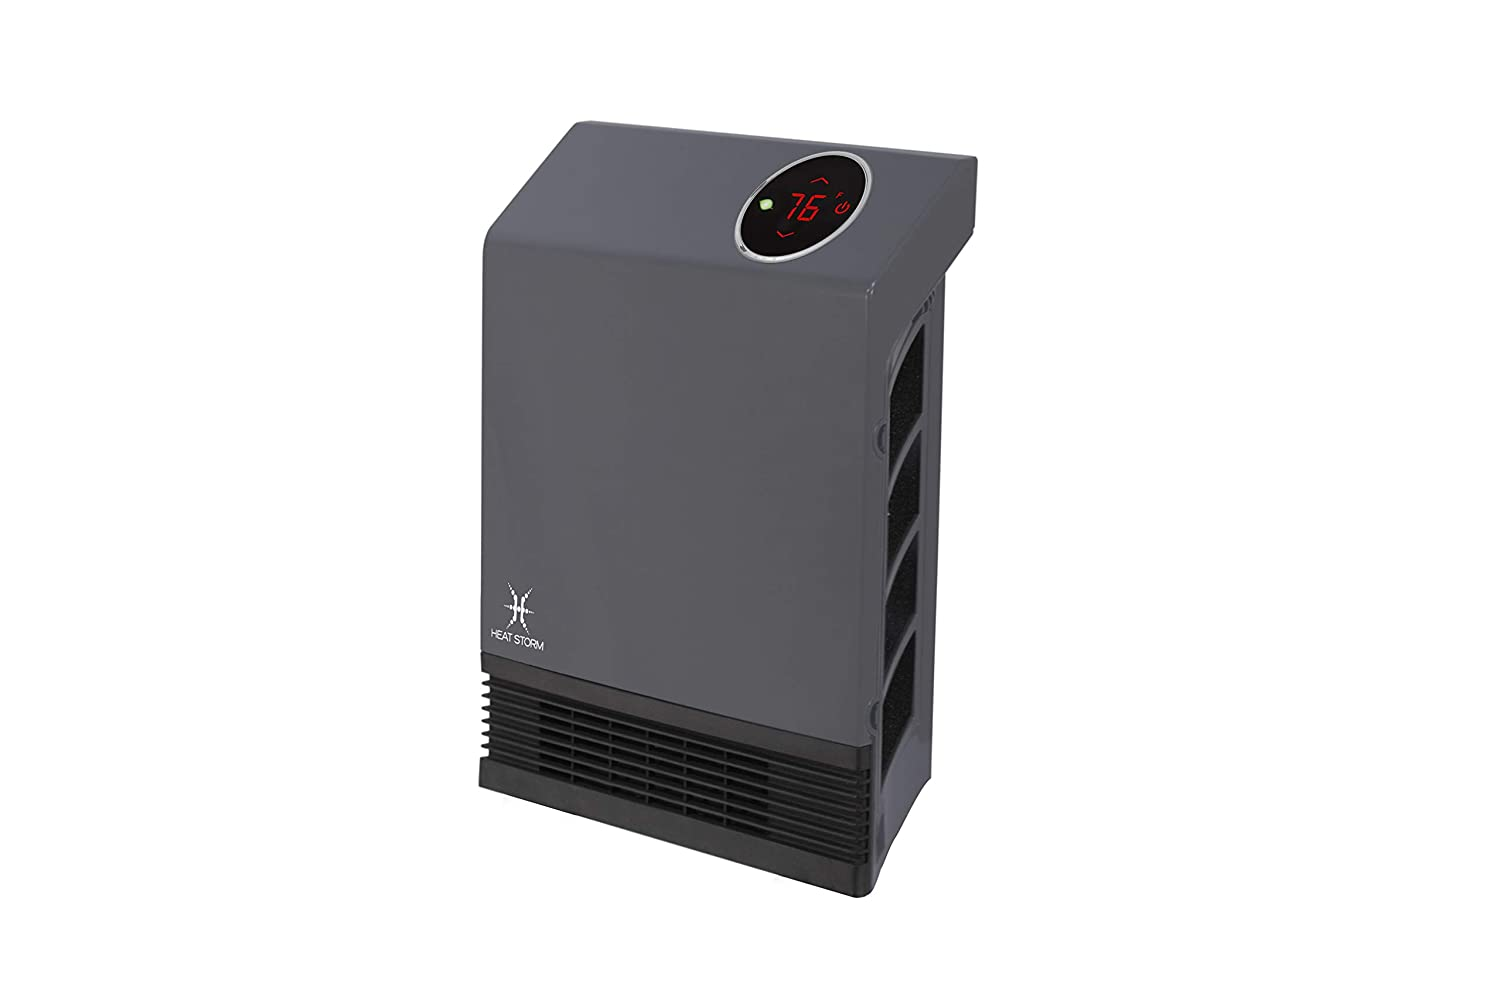 Heat Storm Wall Gray HS-1000-WX Deluxe Indoor Infrared Space Saving-1000 Watts-Remote Control-Home & Office Heater-Safe to Touch Grill